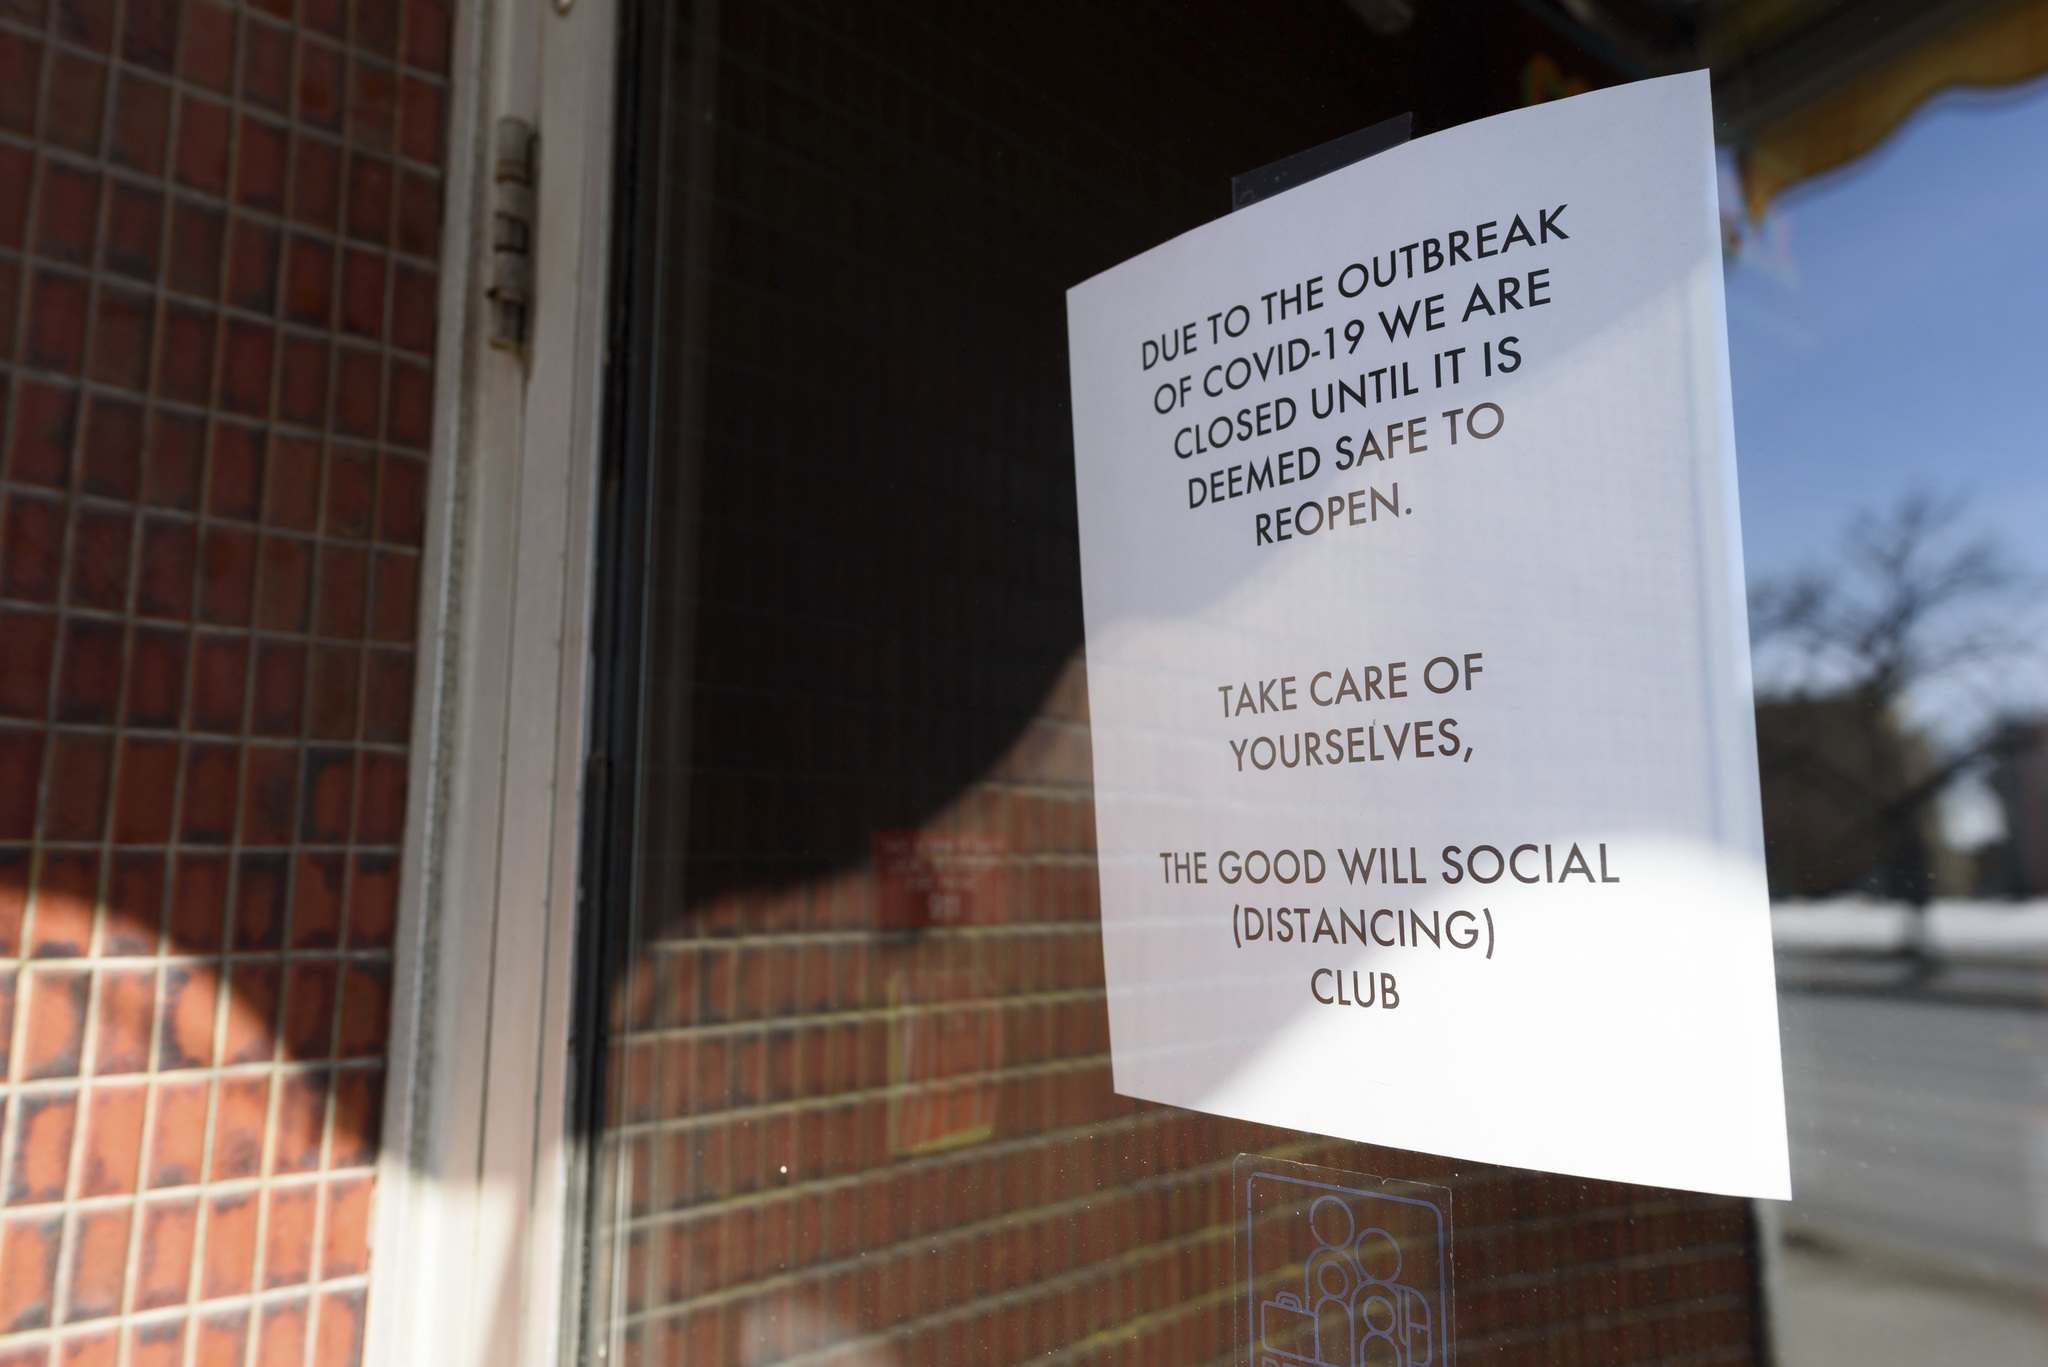 The Good Will Social Club on Portage Avenue promotes social distancing as it remains closed. (Jesse Boily / Winnipeg Free Press)